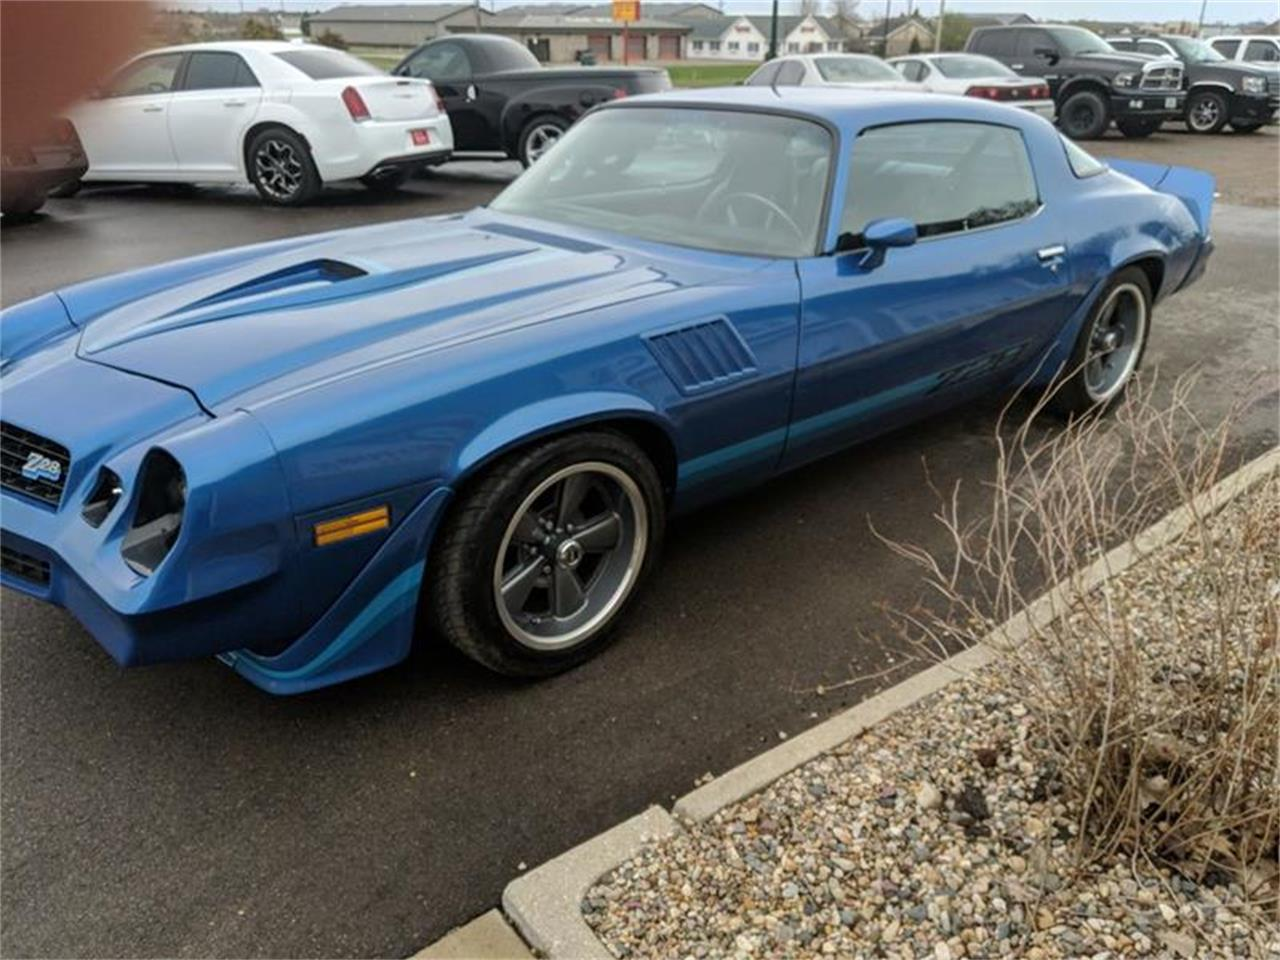 Large Picture of '78 Chevrolet Camaro located in Spirit Lake Iowa Auction Vehicle Offered by Cruz'n Motors - PX97